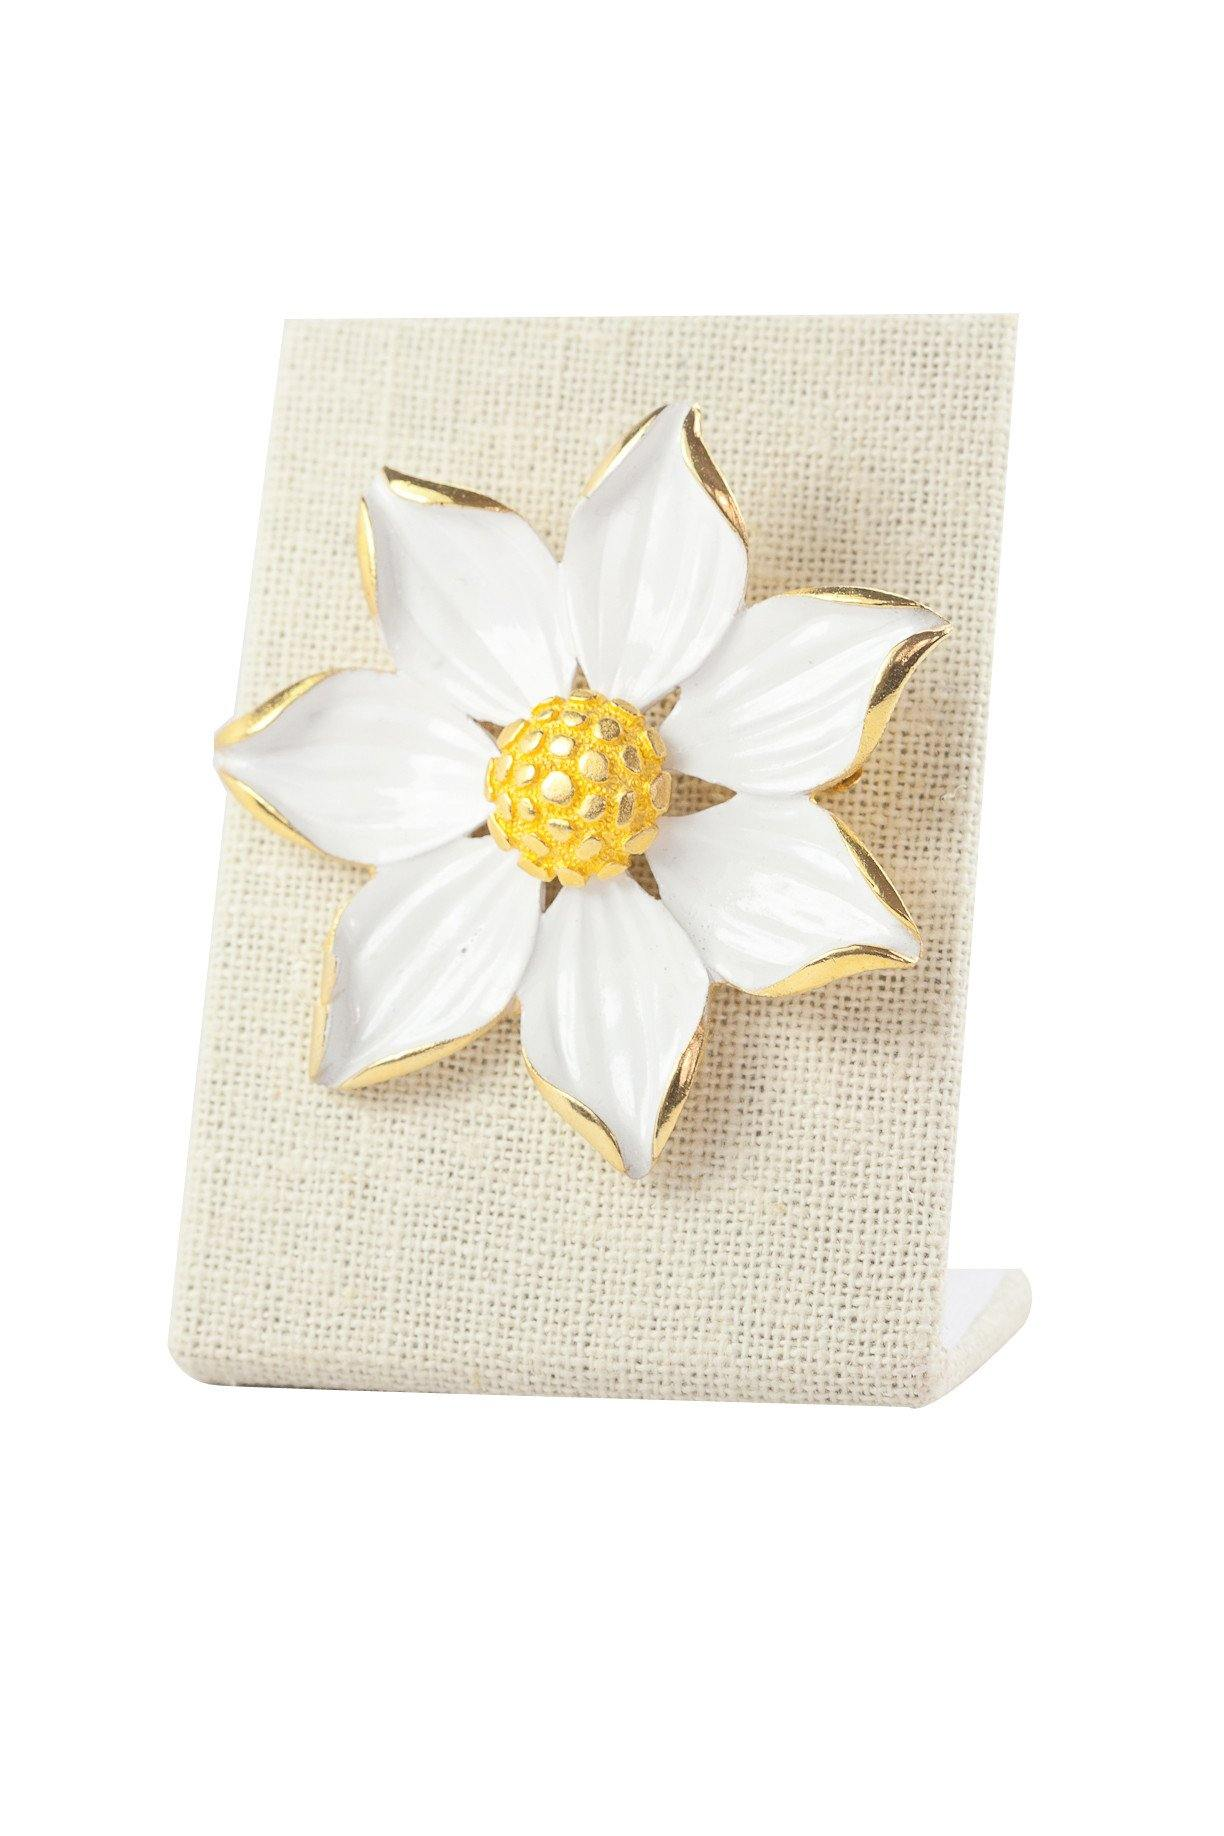 70's__Vintage__Statement Daisy Brooch